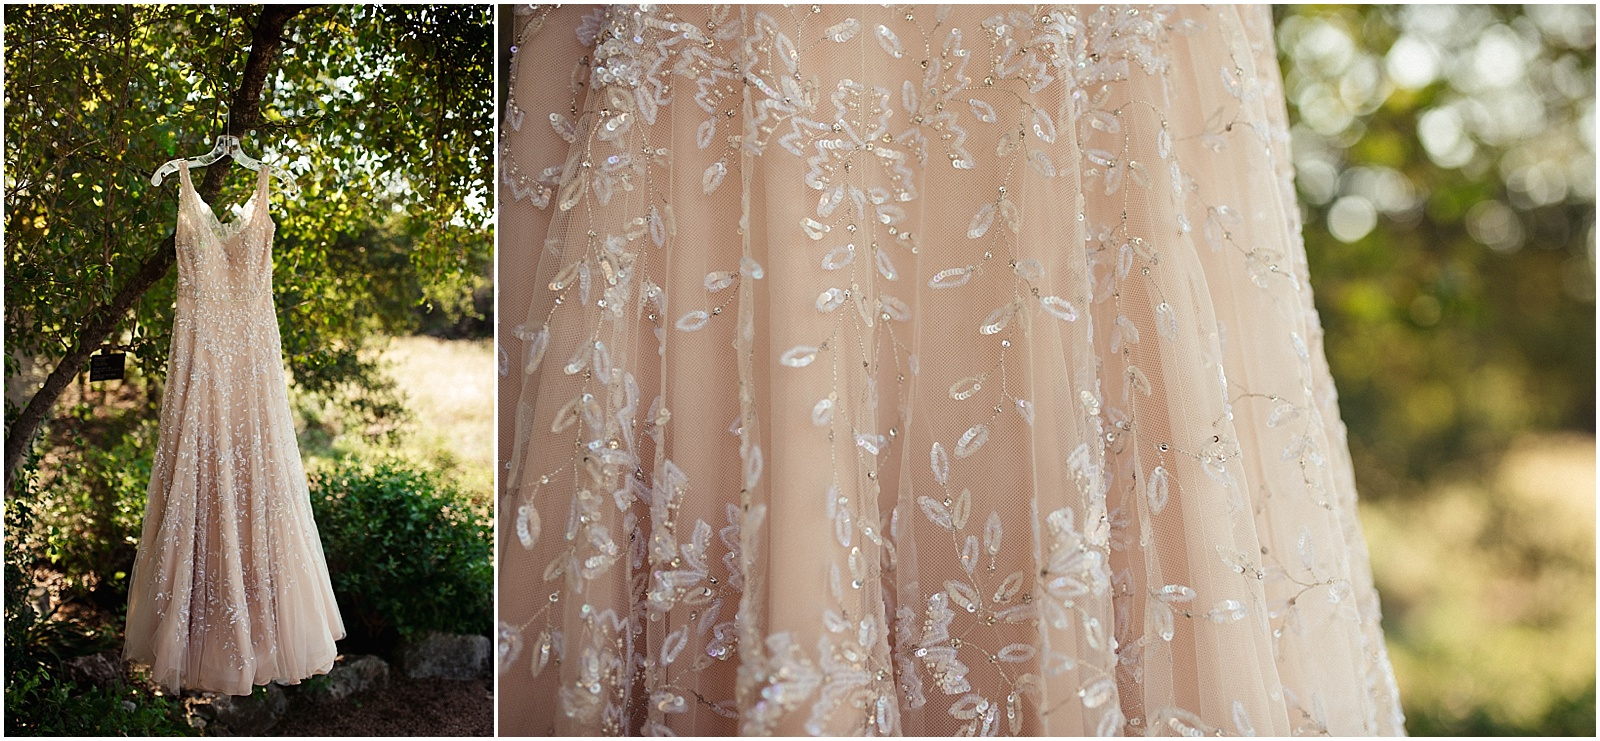 Nordstorm Blush Pink Dress Blush Pink Bridal Details at Lady Bird Johnson Wildflower Center Austin Texas Wedding